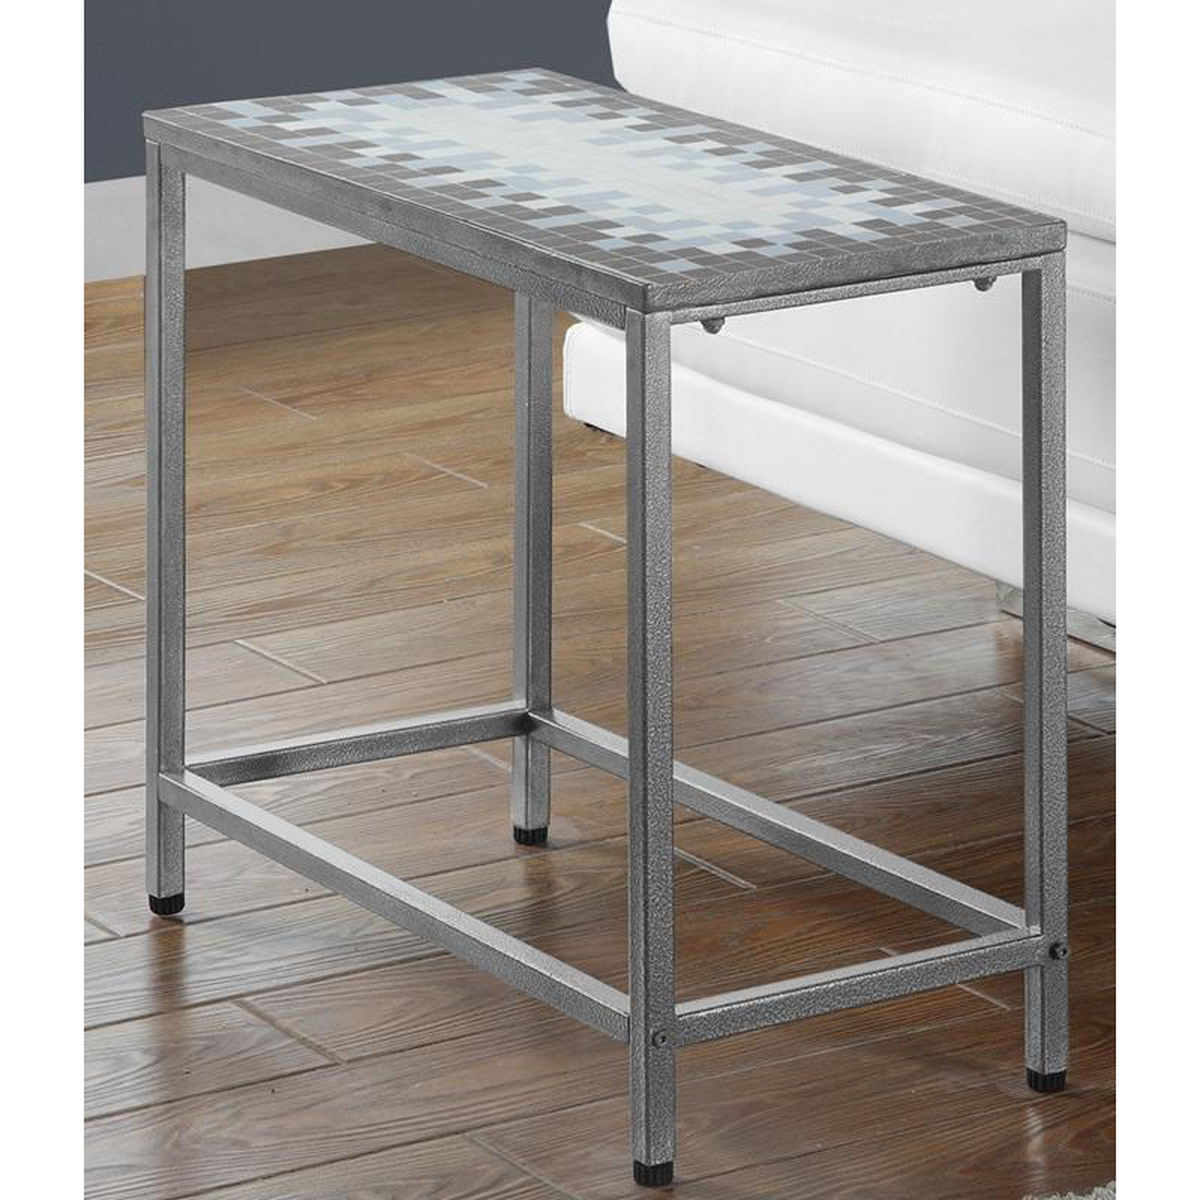 hammered metal accent table bizchair monarch specialties msp main our with gray and blue mosaic tile top console shelves drawers target white comforter red cloth round rugs ikea